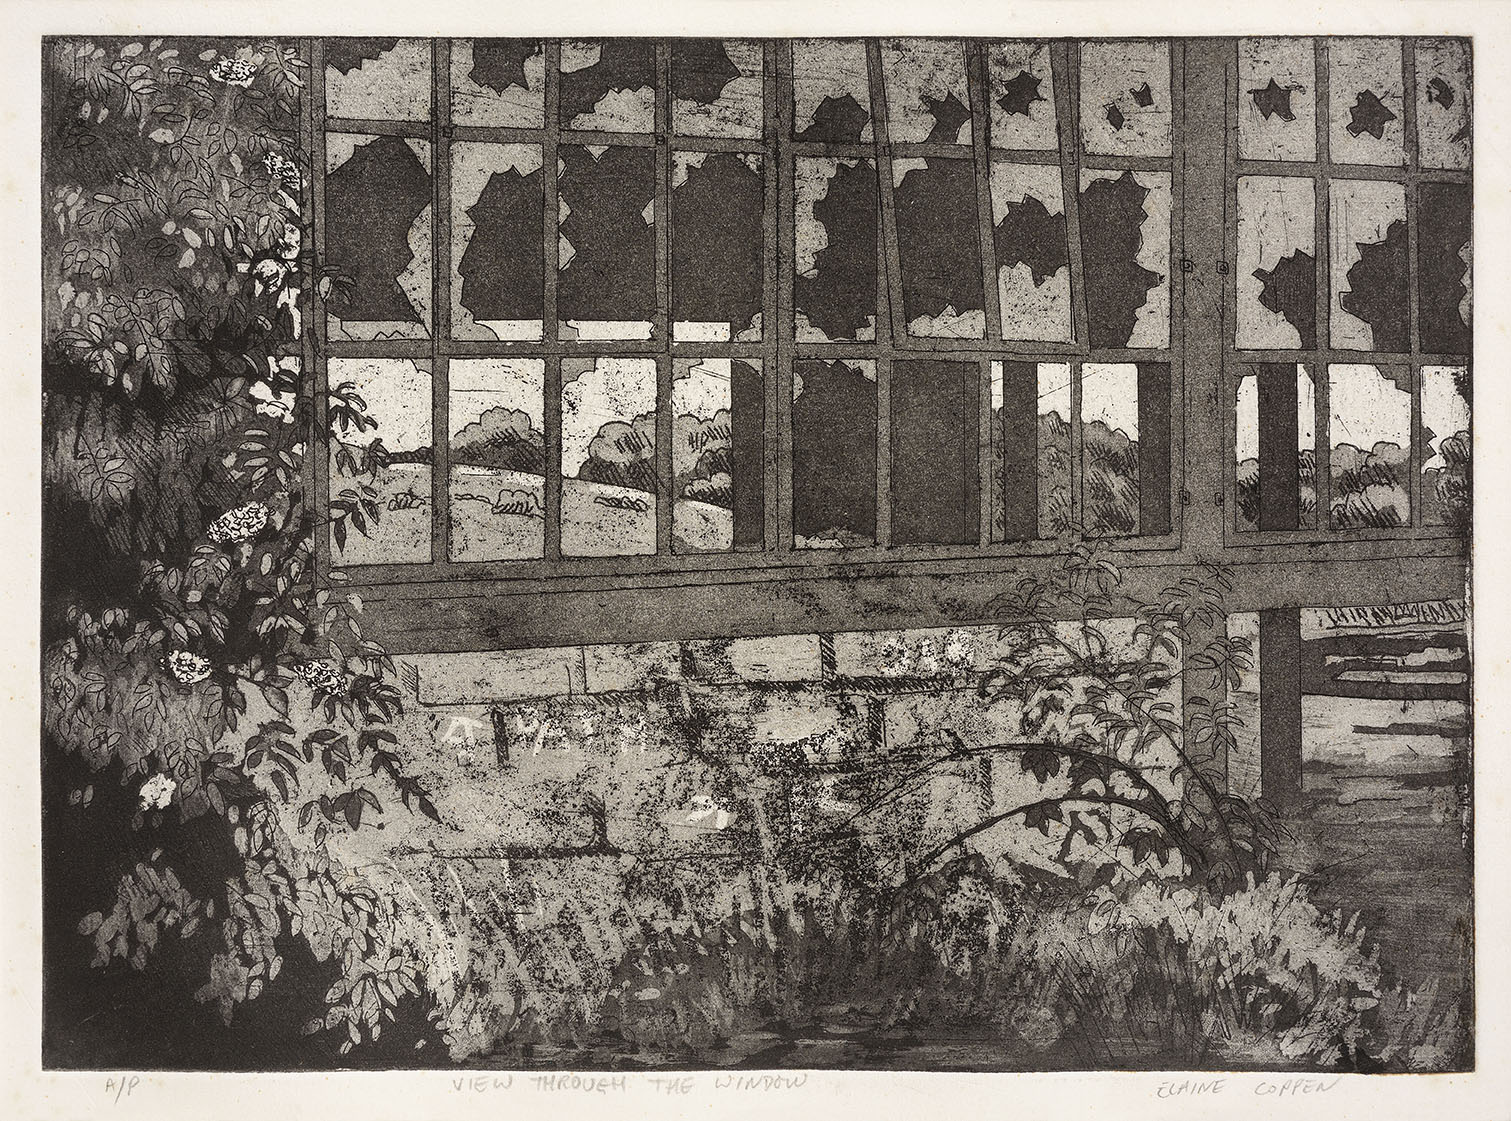 Elaine Coppen (b.1945)    View Through the Window,  1995, Etching on paper, 8 ½ x 11 ½ in, Signed – AP  [CAS 51] Acquired in 1995